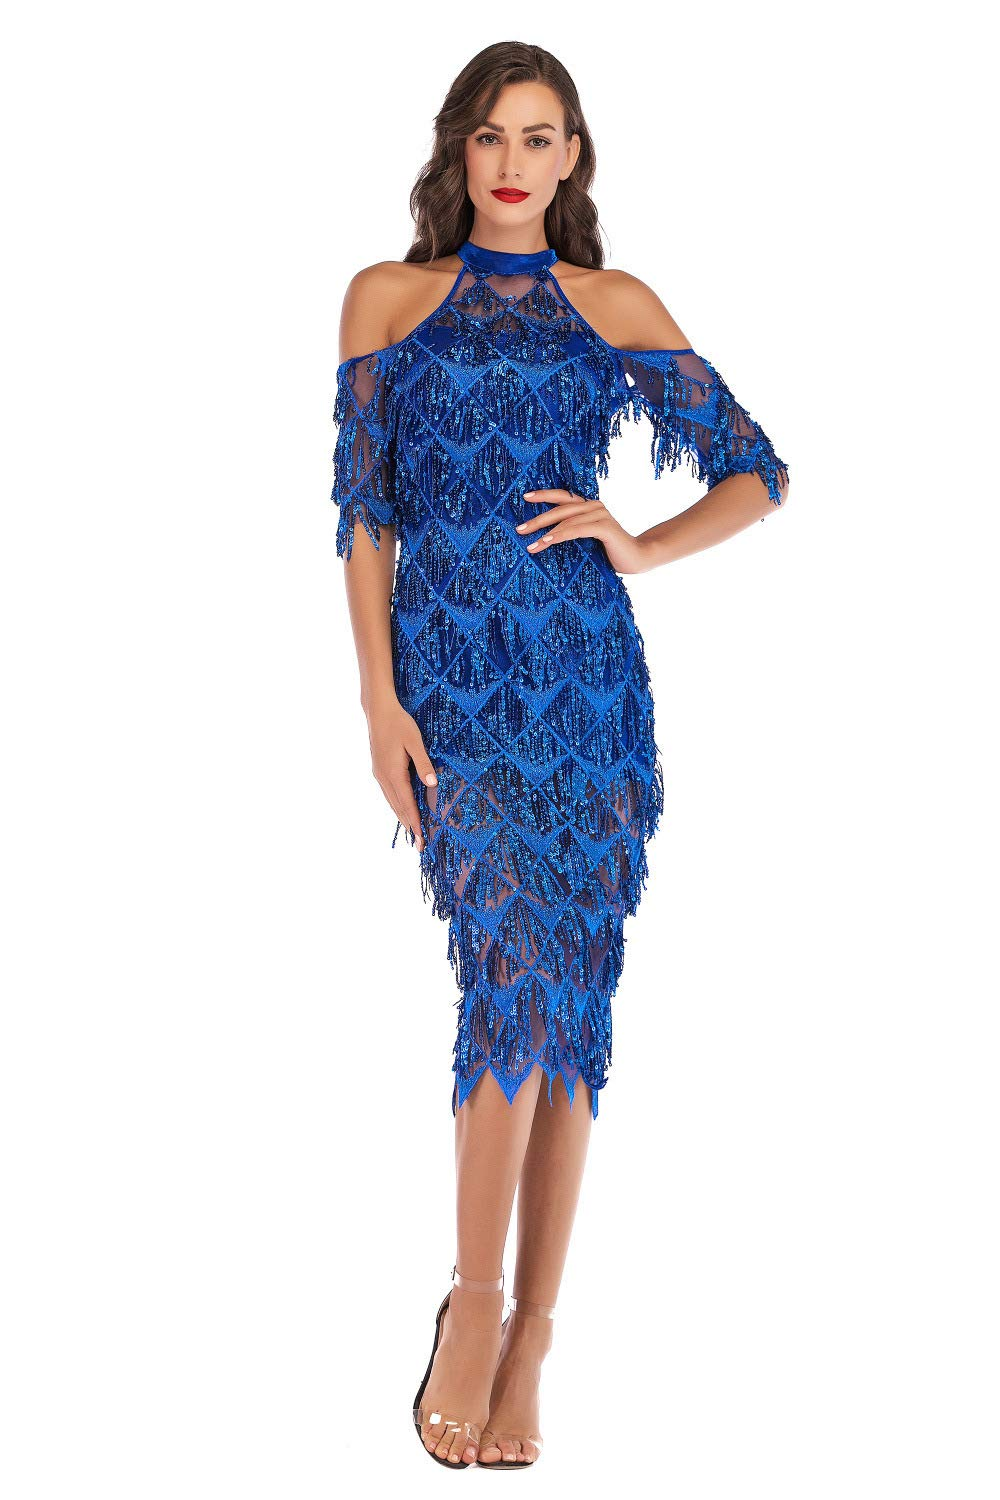 bluee Women's Sexy Strapless Sequined Long Dress Summer Hanging Halter Cocktail Club Party Dress,blueeL